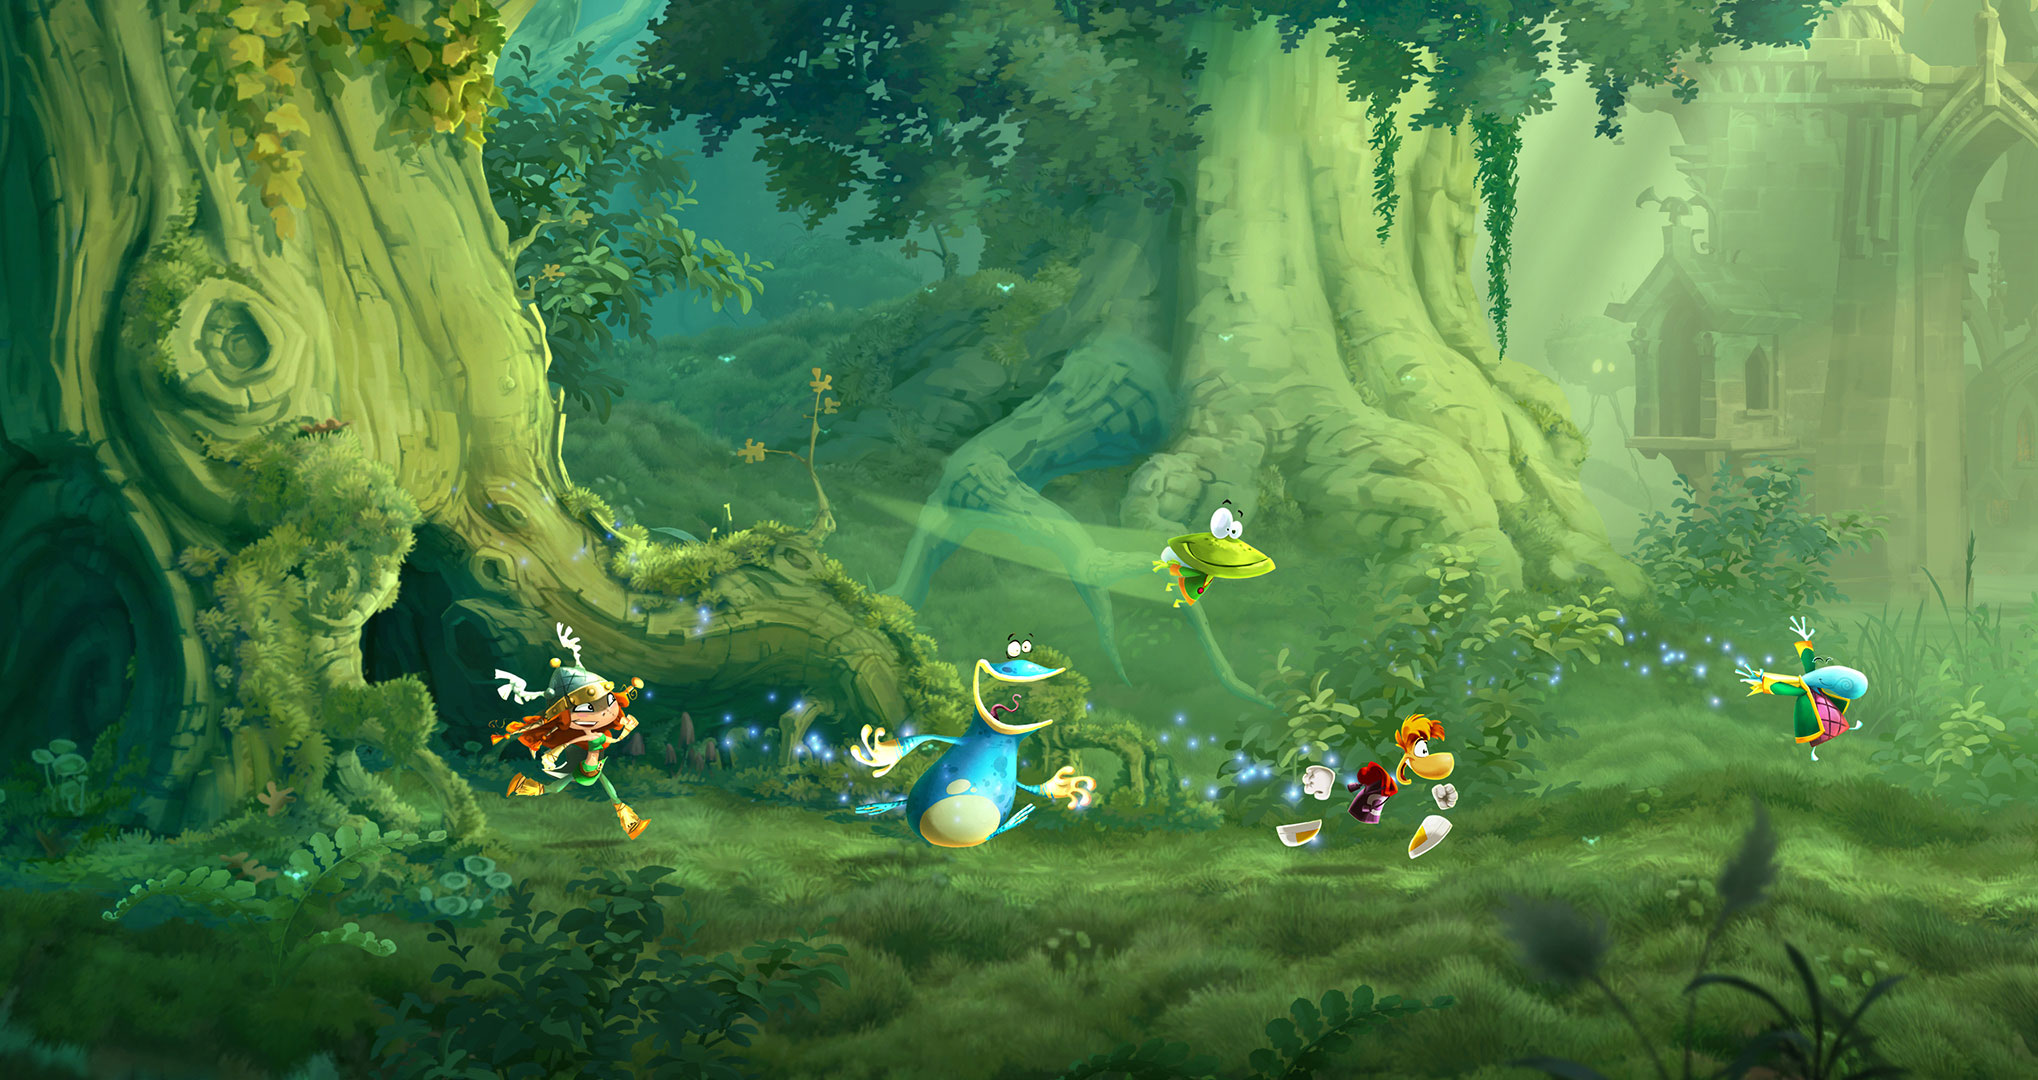 Demo de Rayman Legends Definitive Edition retorna à eShop européia